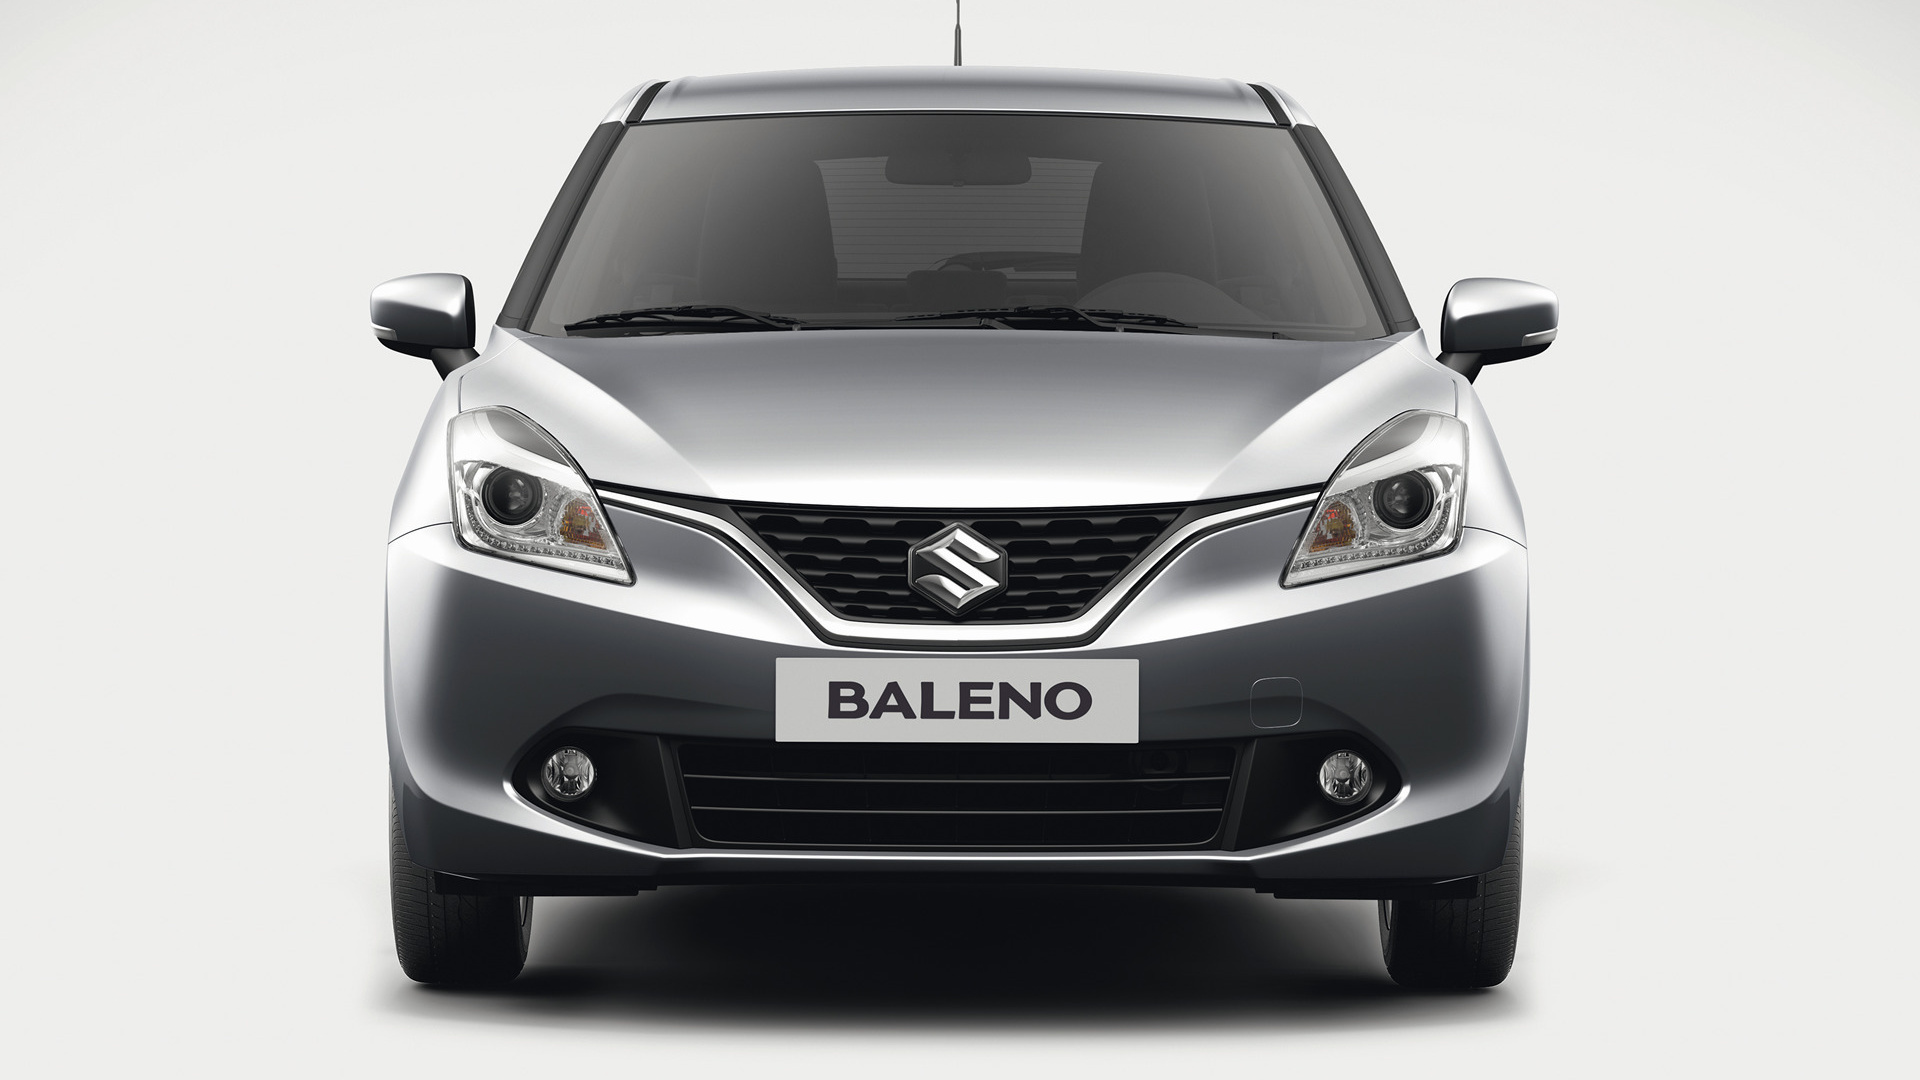 Maruti Suzuki Baleno Specifications